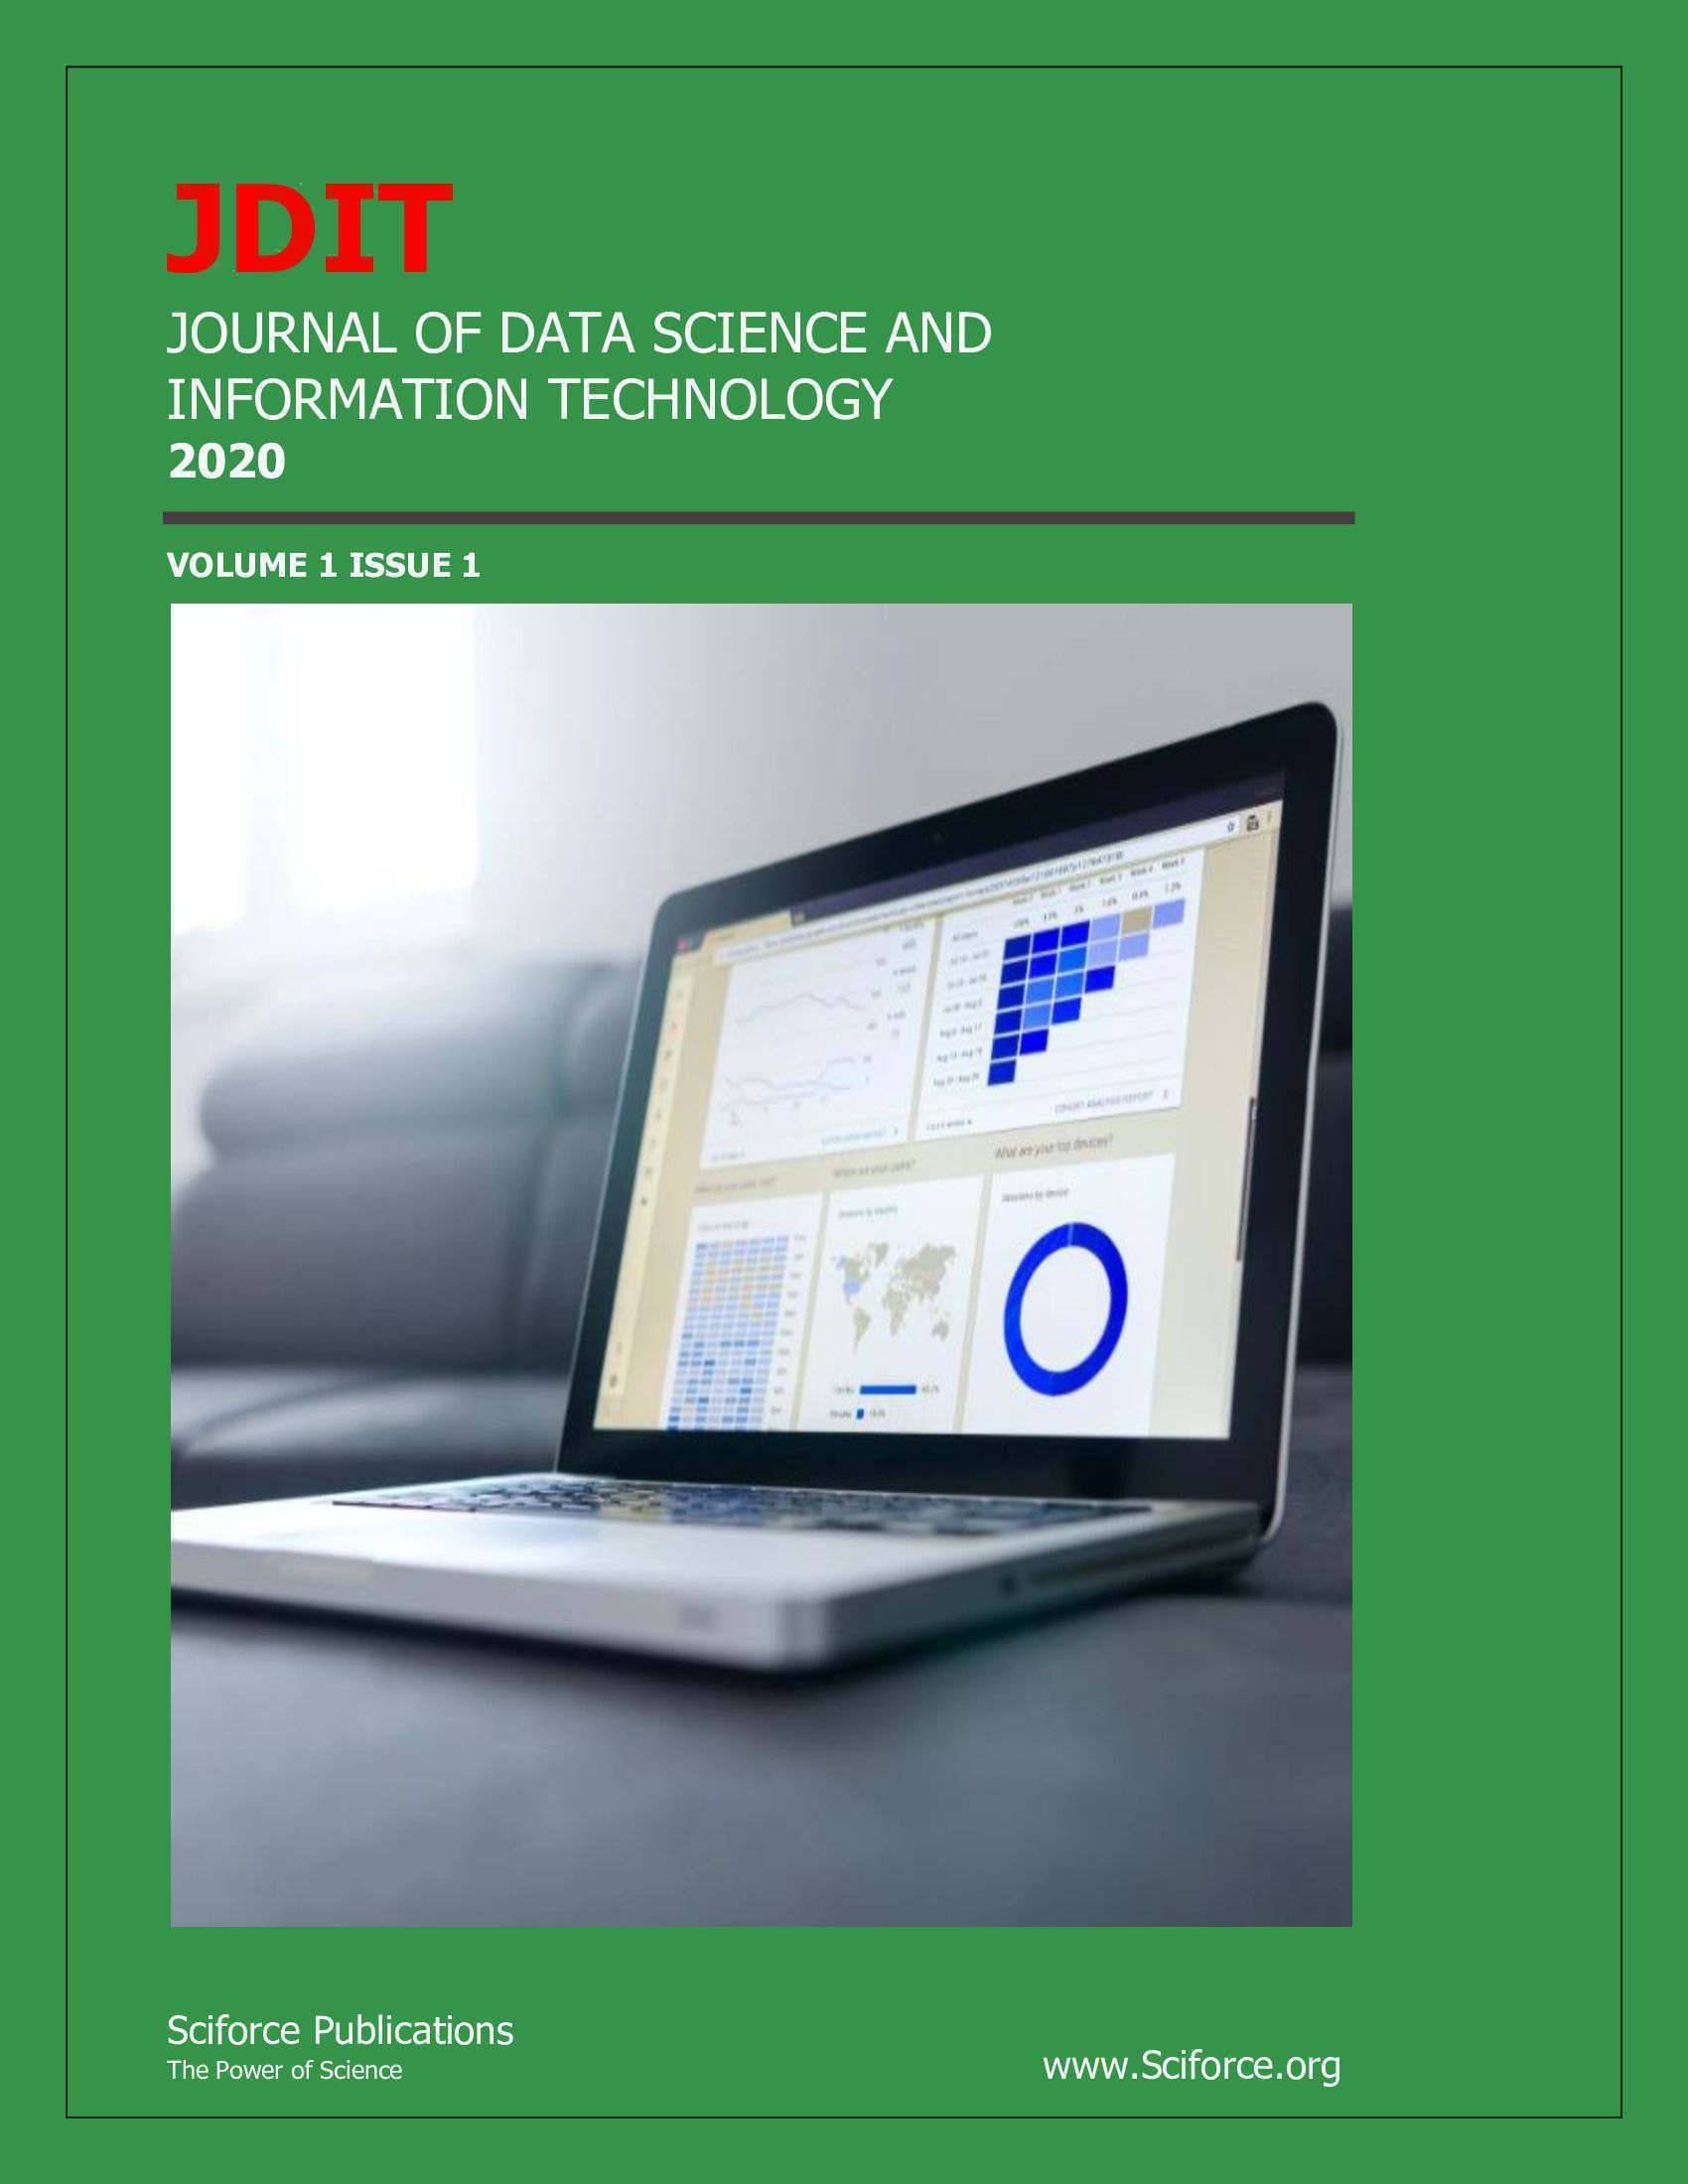 Journal of Data Science and Information Technology